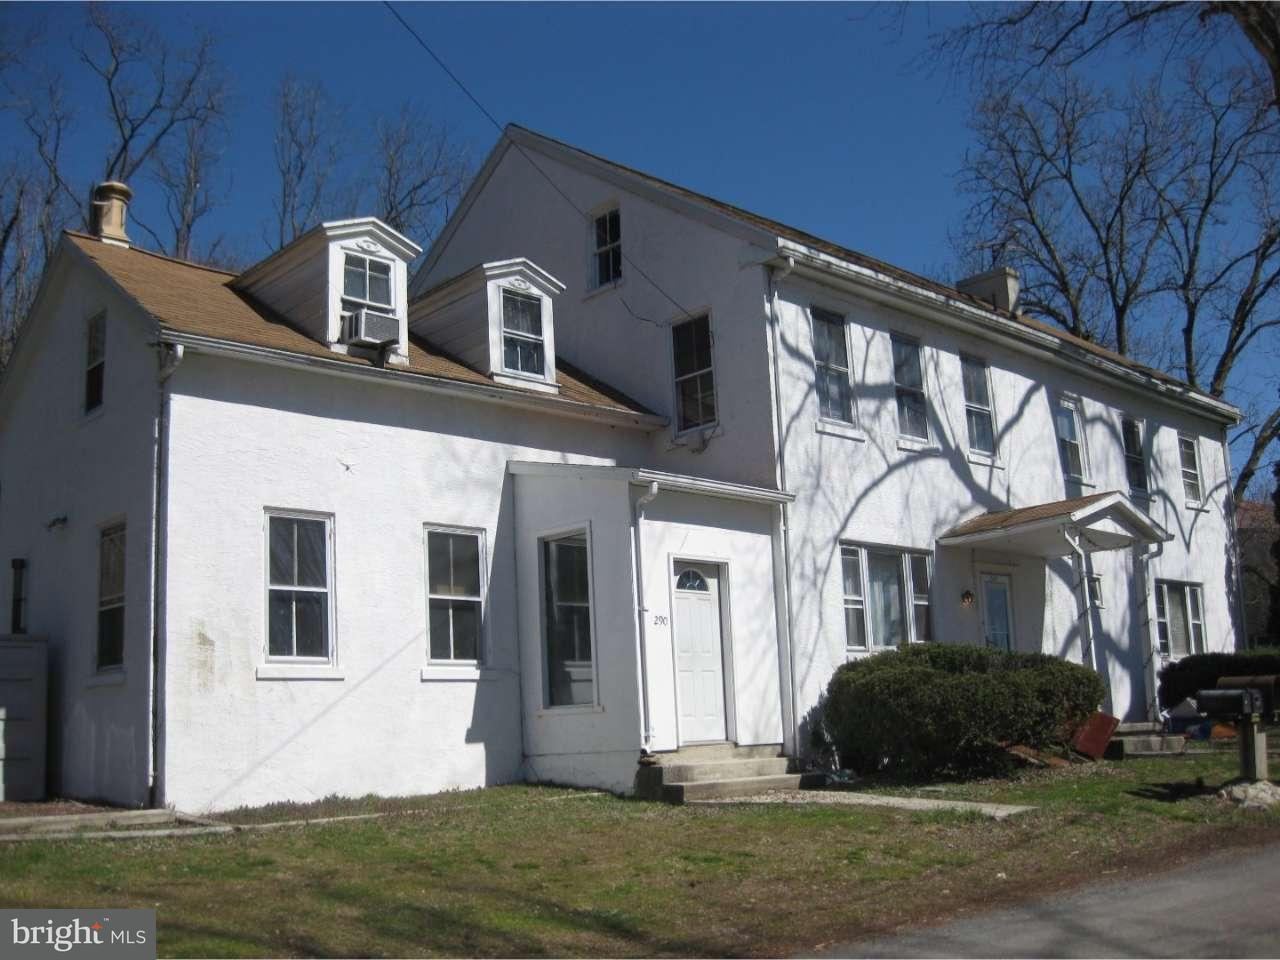 Single Family Home for Sale at 280 HOTTENSTEIN Road Kutztown, Pennsylvania 19530 United States